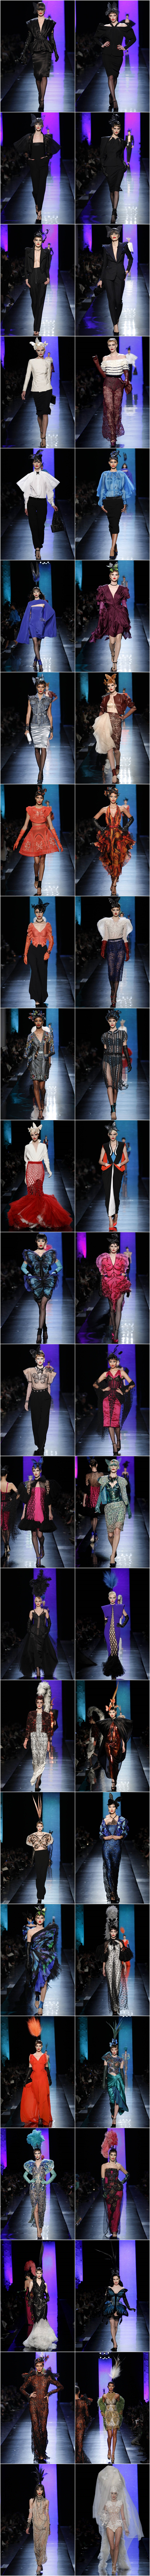 jean-paul-gaultier-haute-couture-spring-2014-fashion4addicts.com